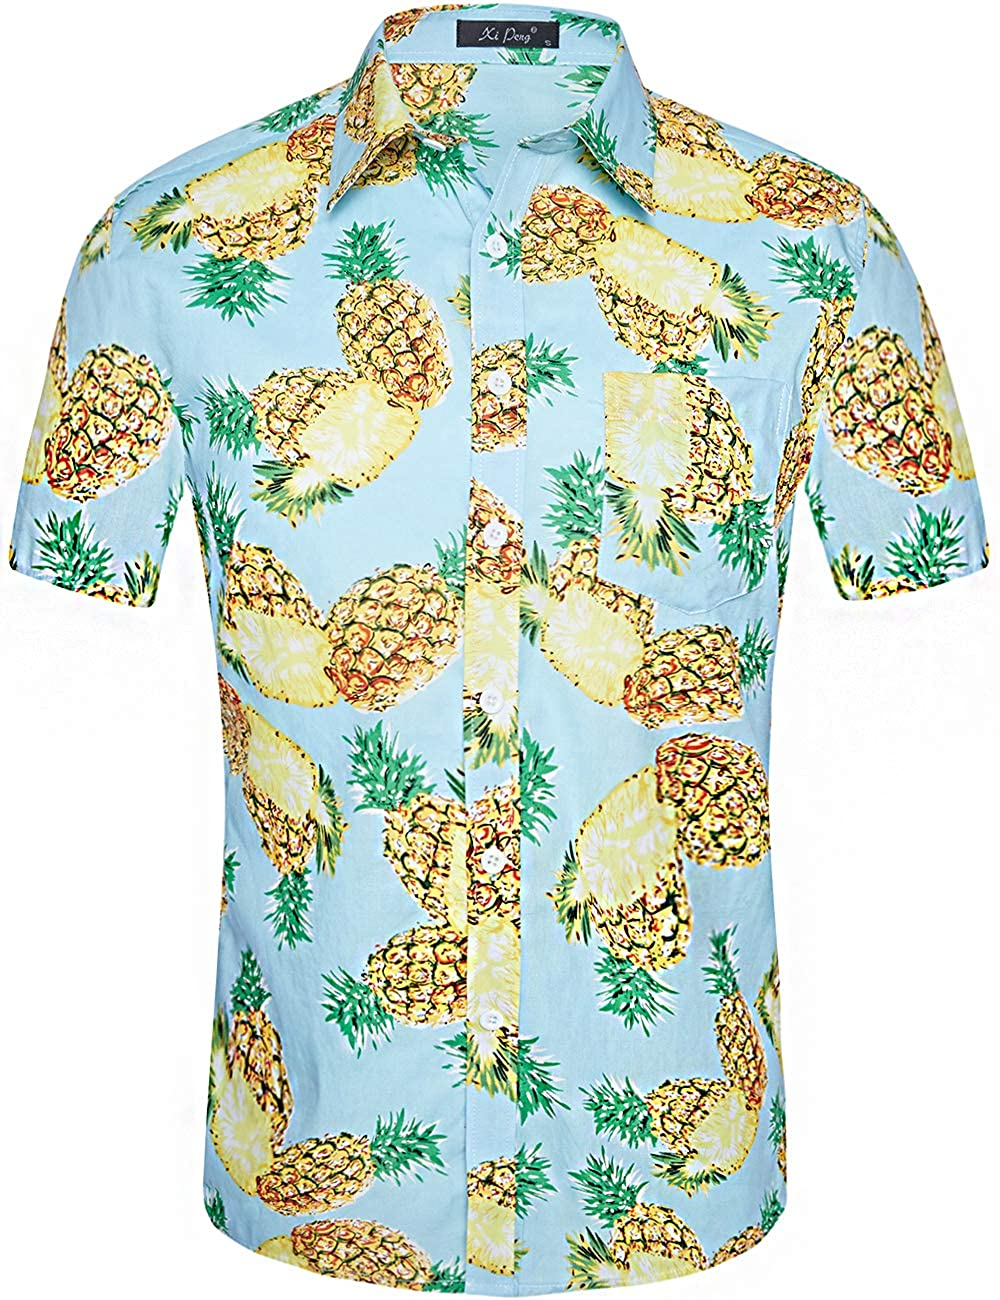 d4daa7f6 DESIGN:Summer Tropical Mens Casual Button Up Flower Print Caribbean Attire  Beach Aloha Hawaiian Shirts(Floral Hibiscus/Pineapple/Flamingo/Parrot/Palm  ...